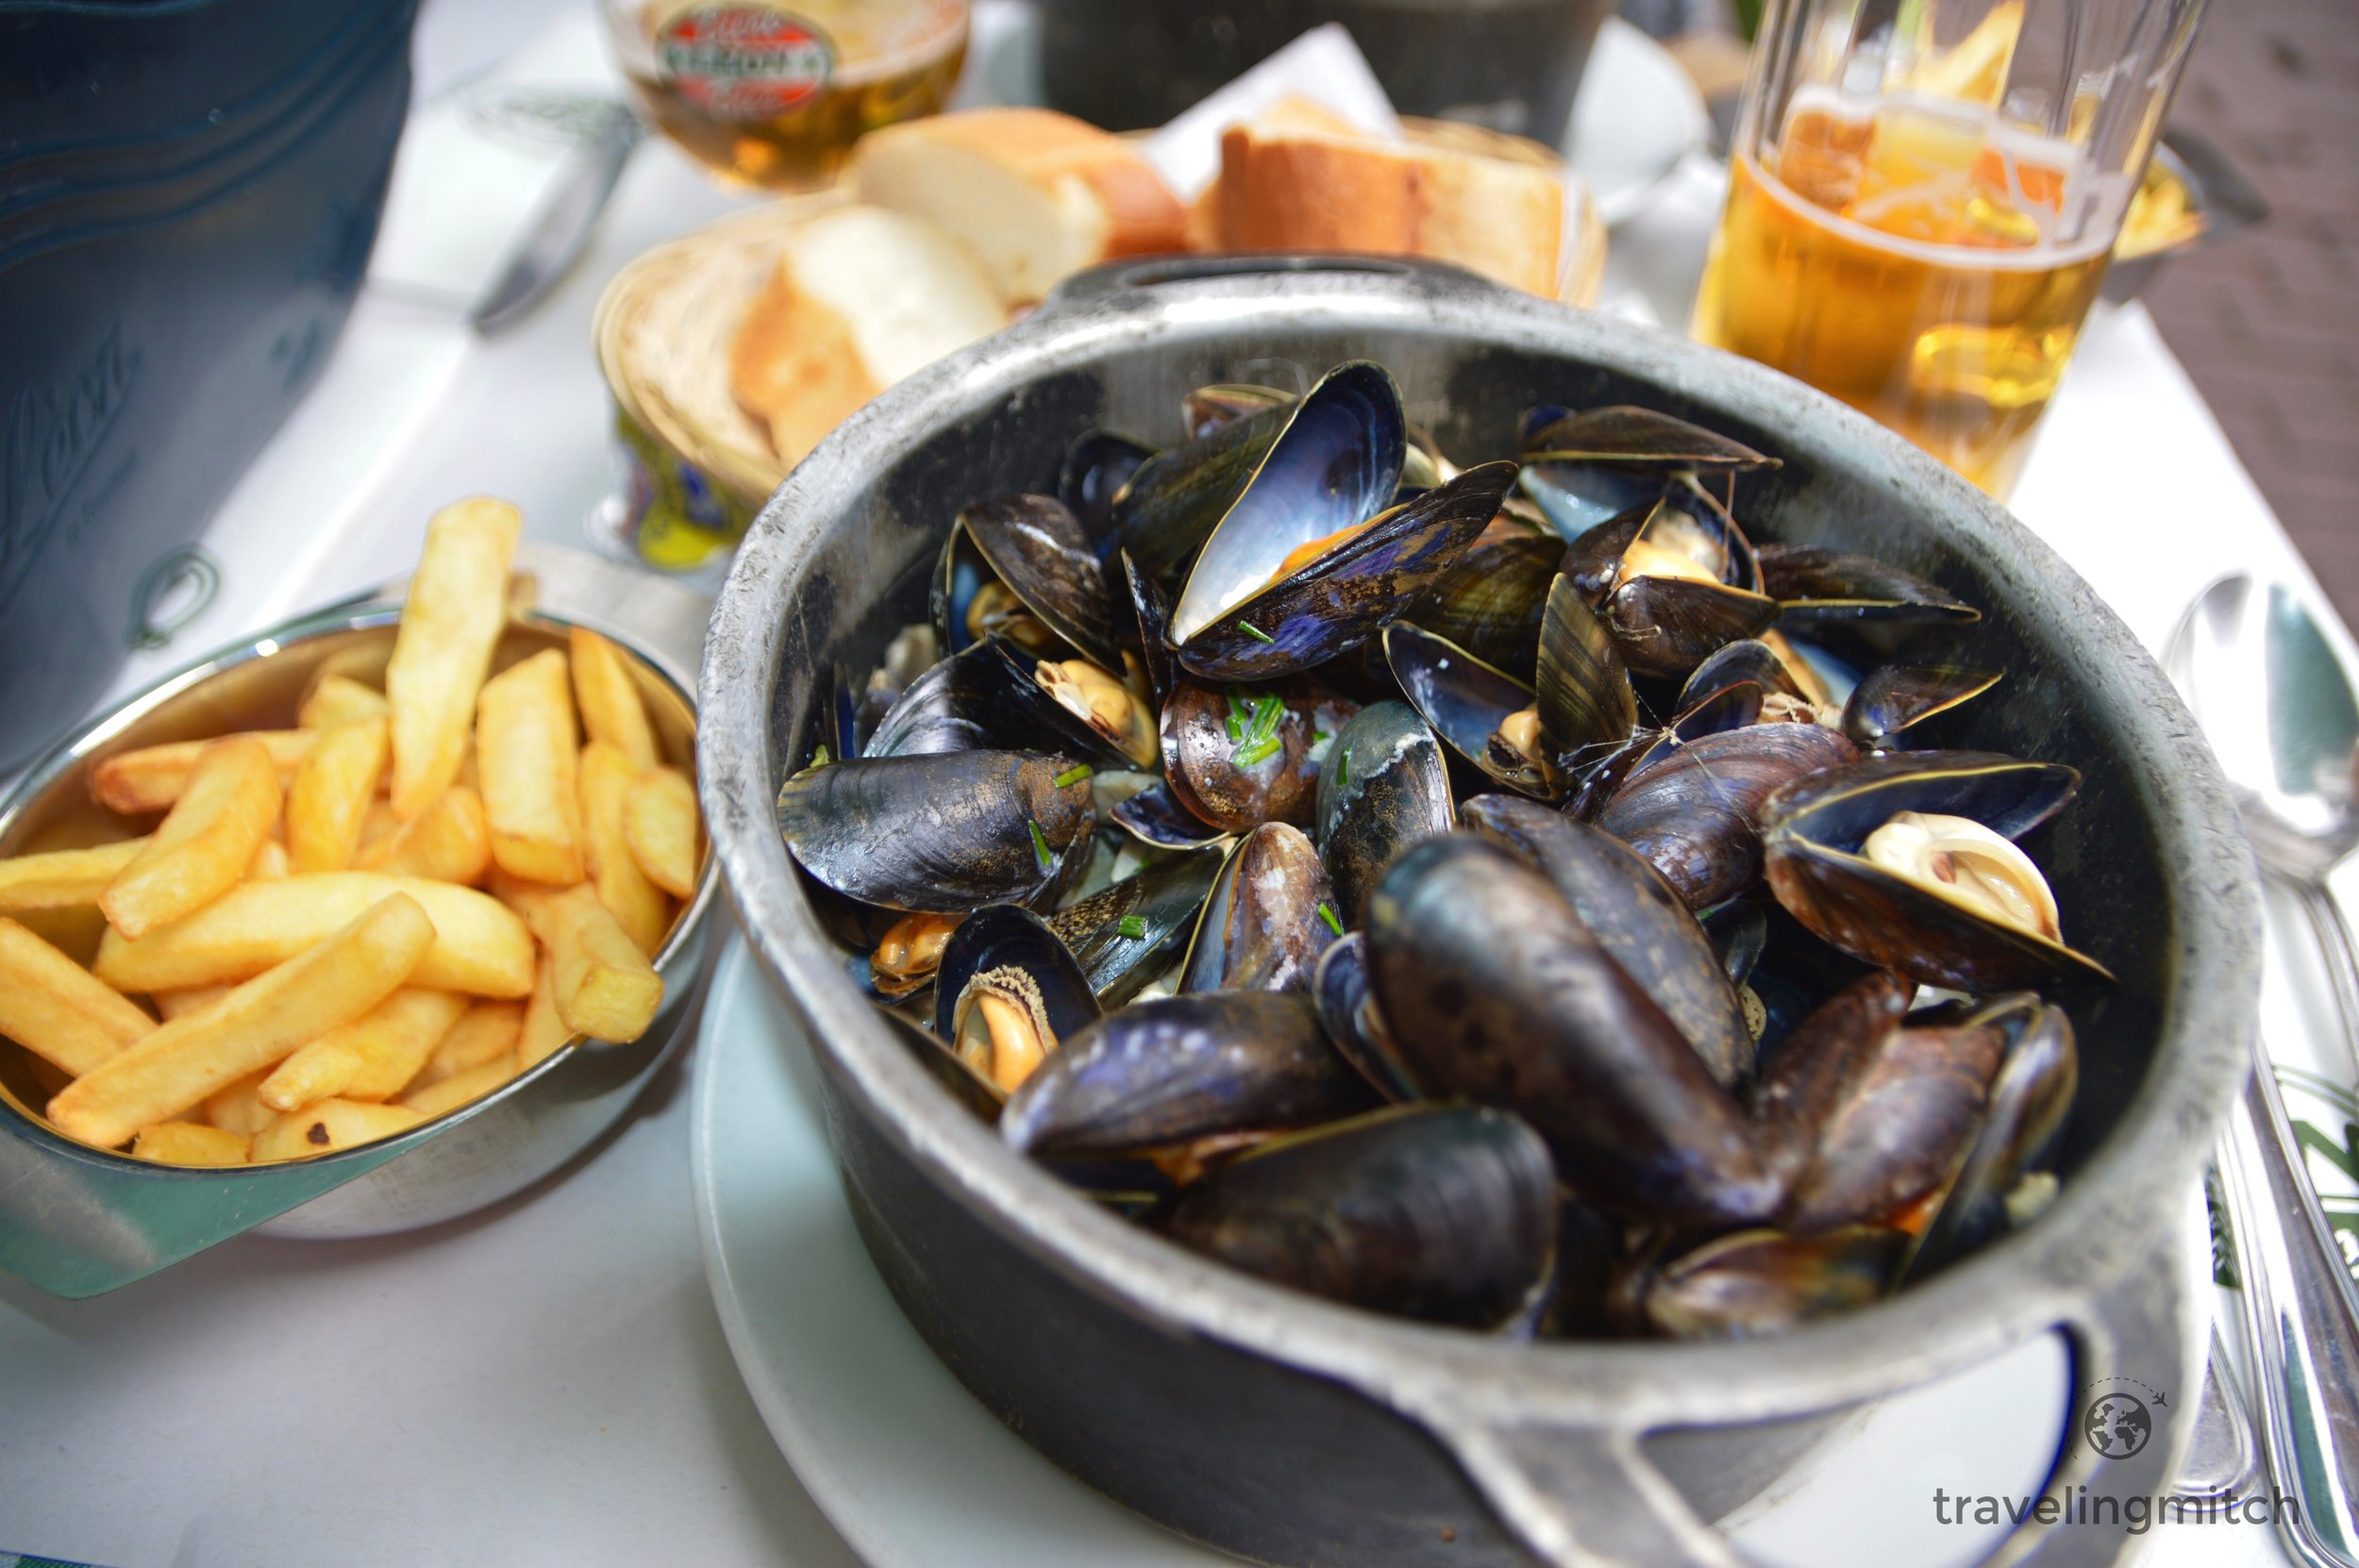 Mussels at Chez Leon in Brussels, Belgium. Delicious!